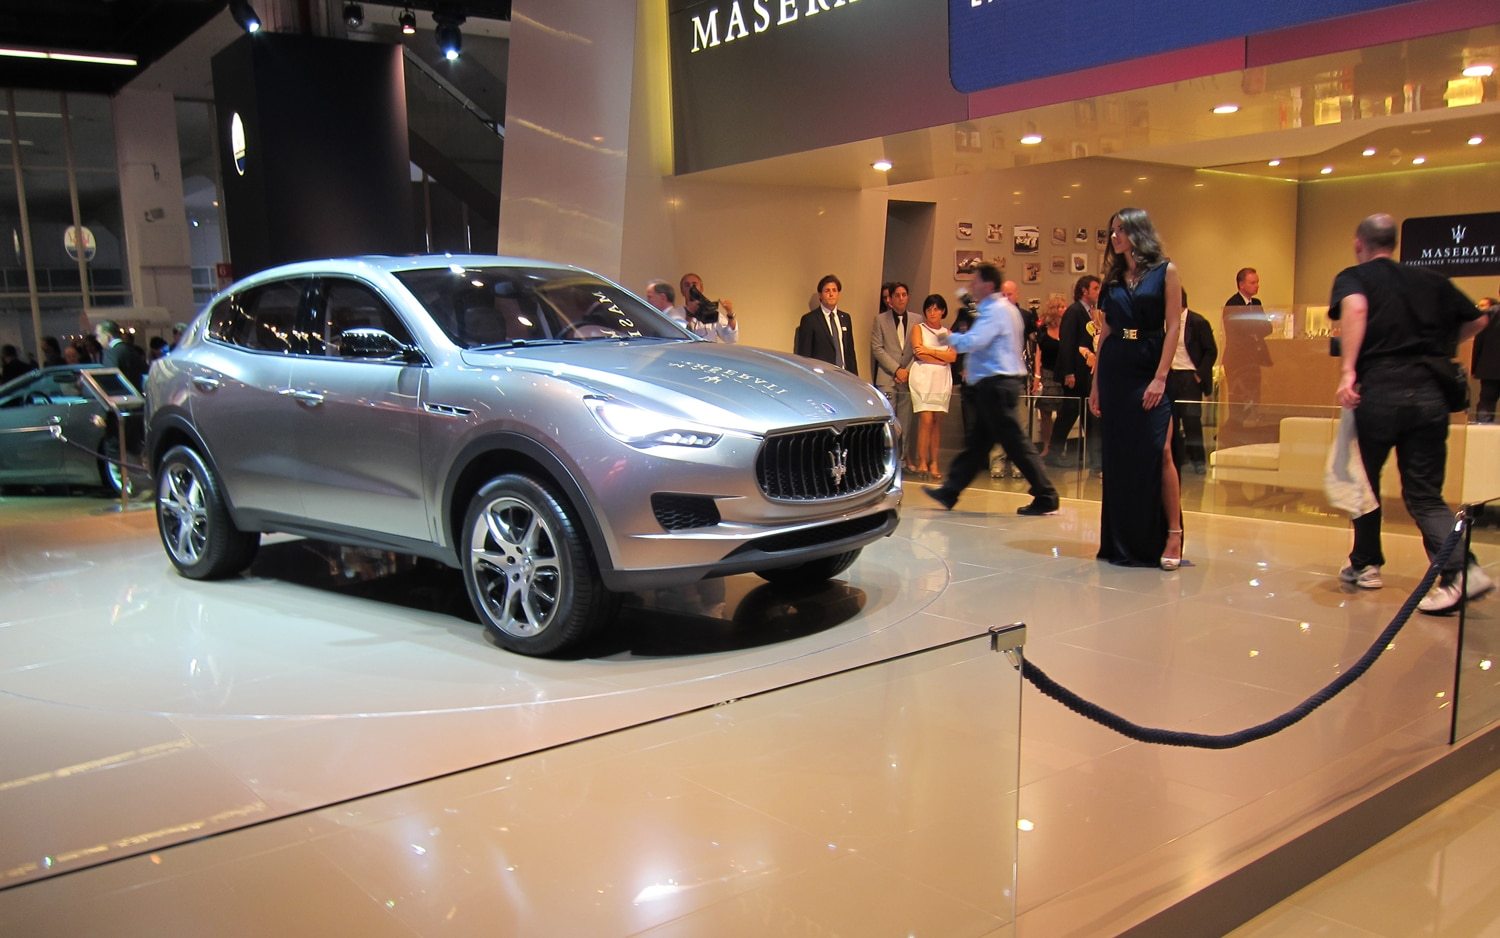 https://st.automobilemag.com/uploads/sites/11/2011/09/maserati-kubang-concept-front-right-view.jpg